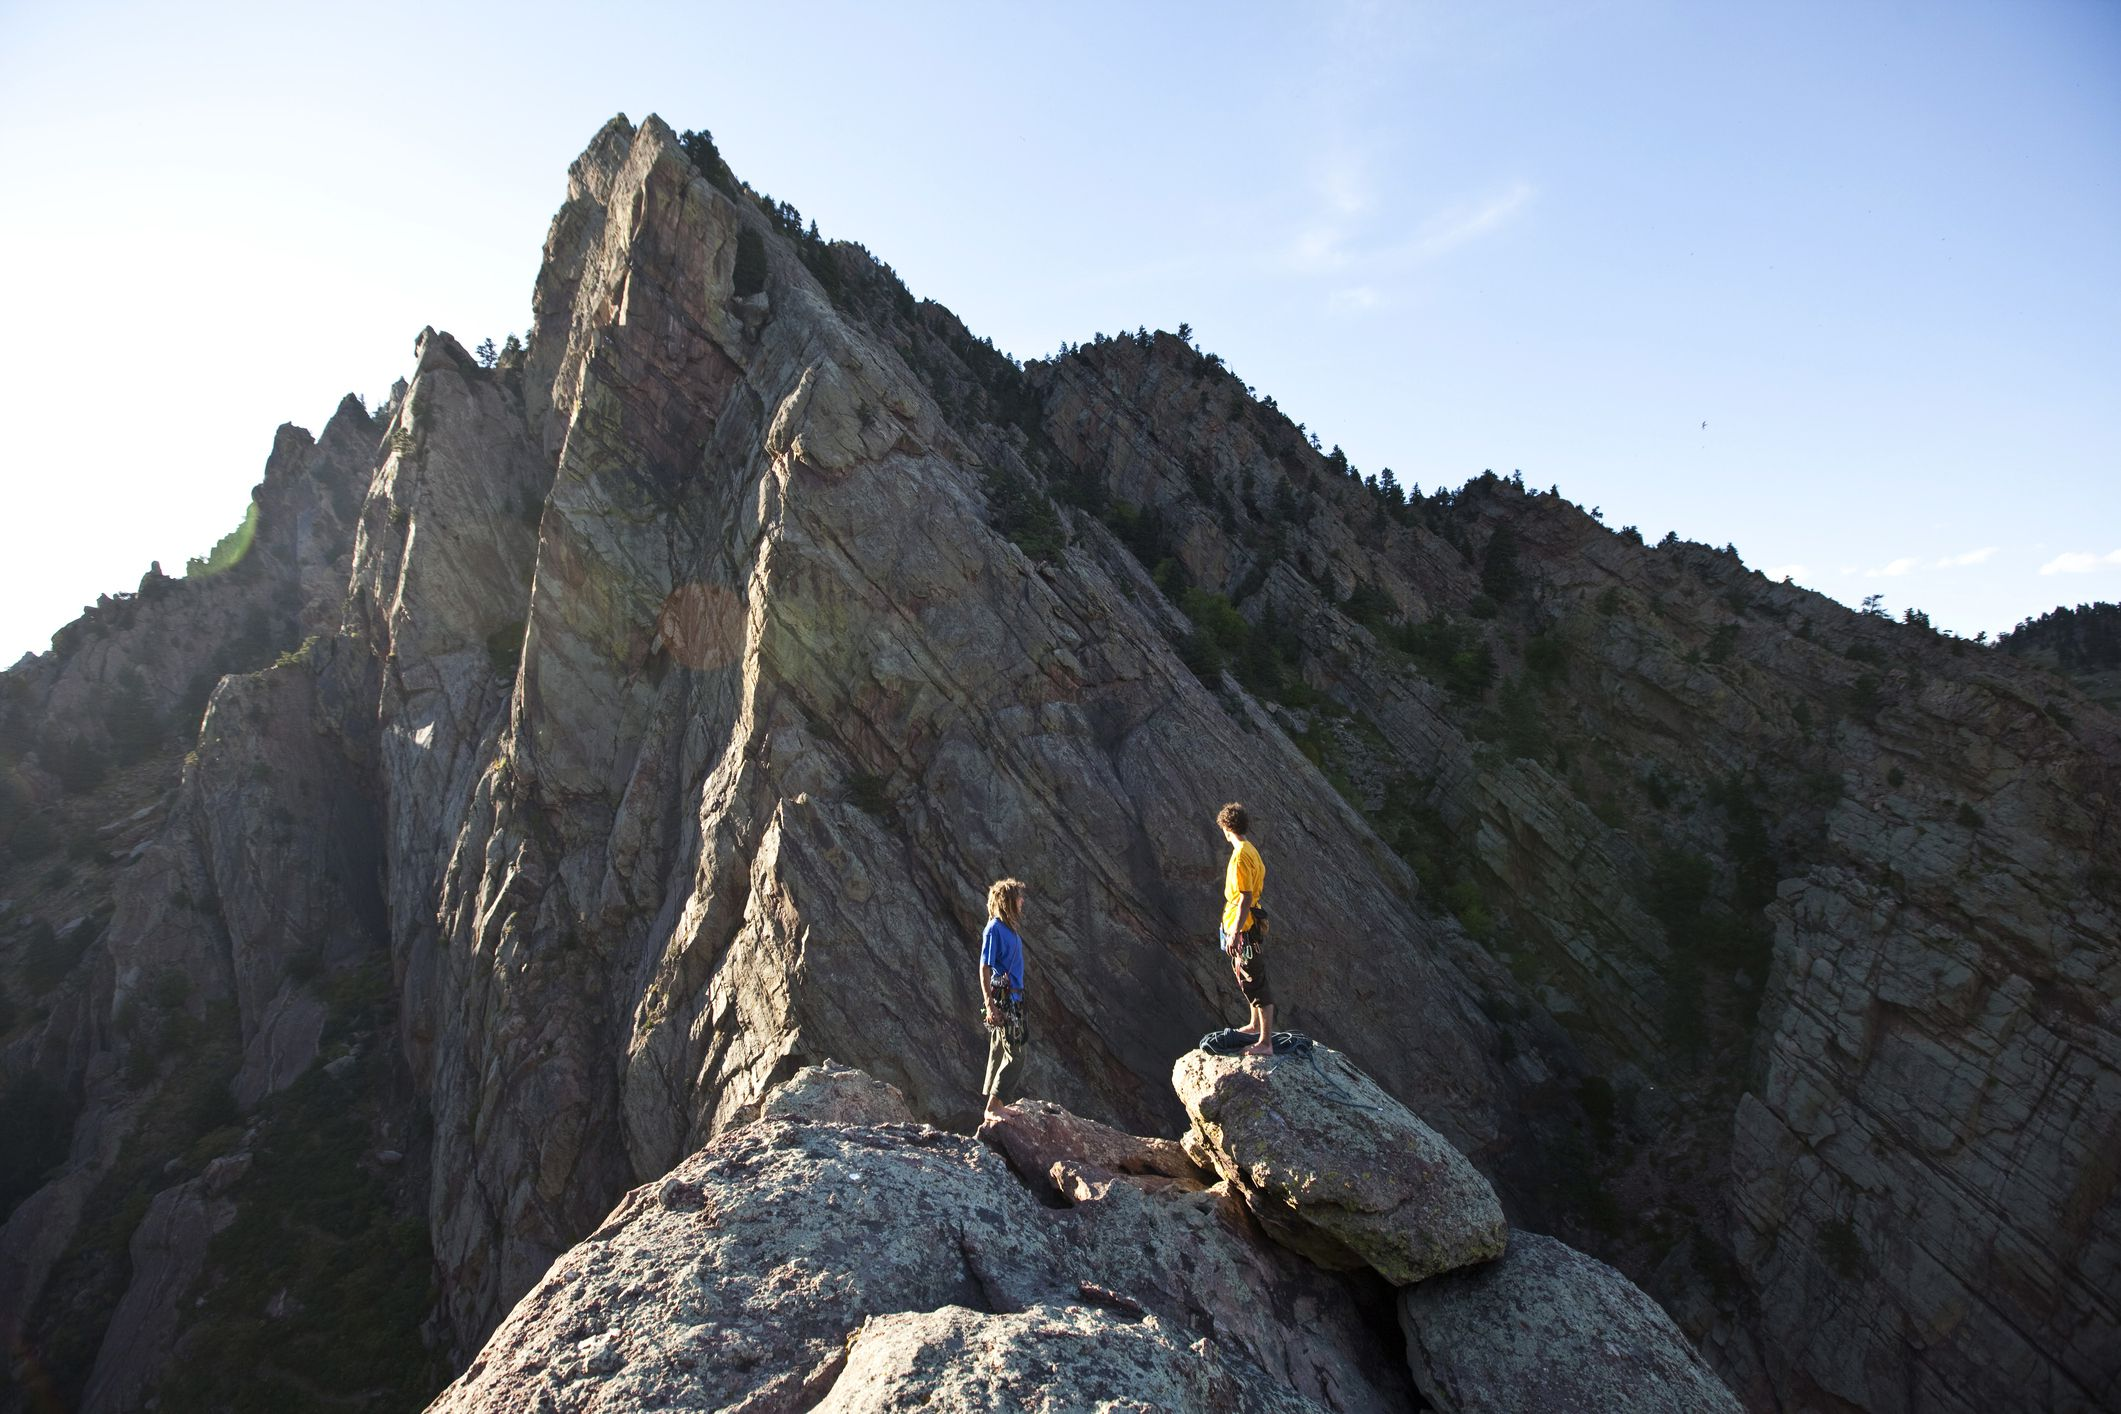 Eldorado Canyon State Park: The Complete Guide